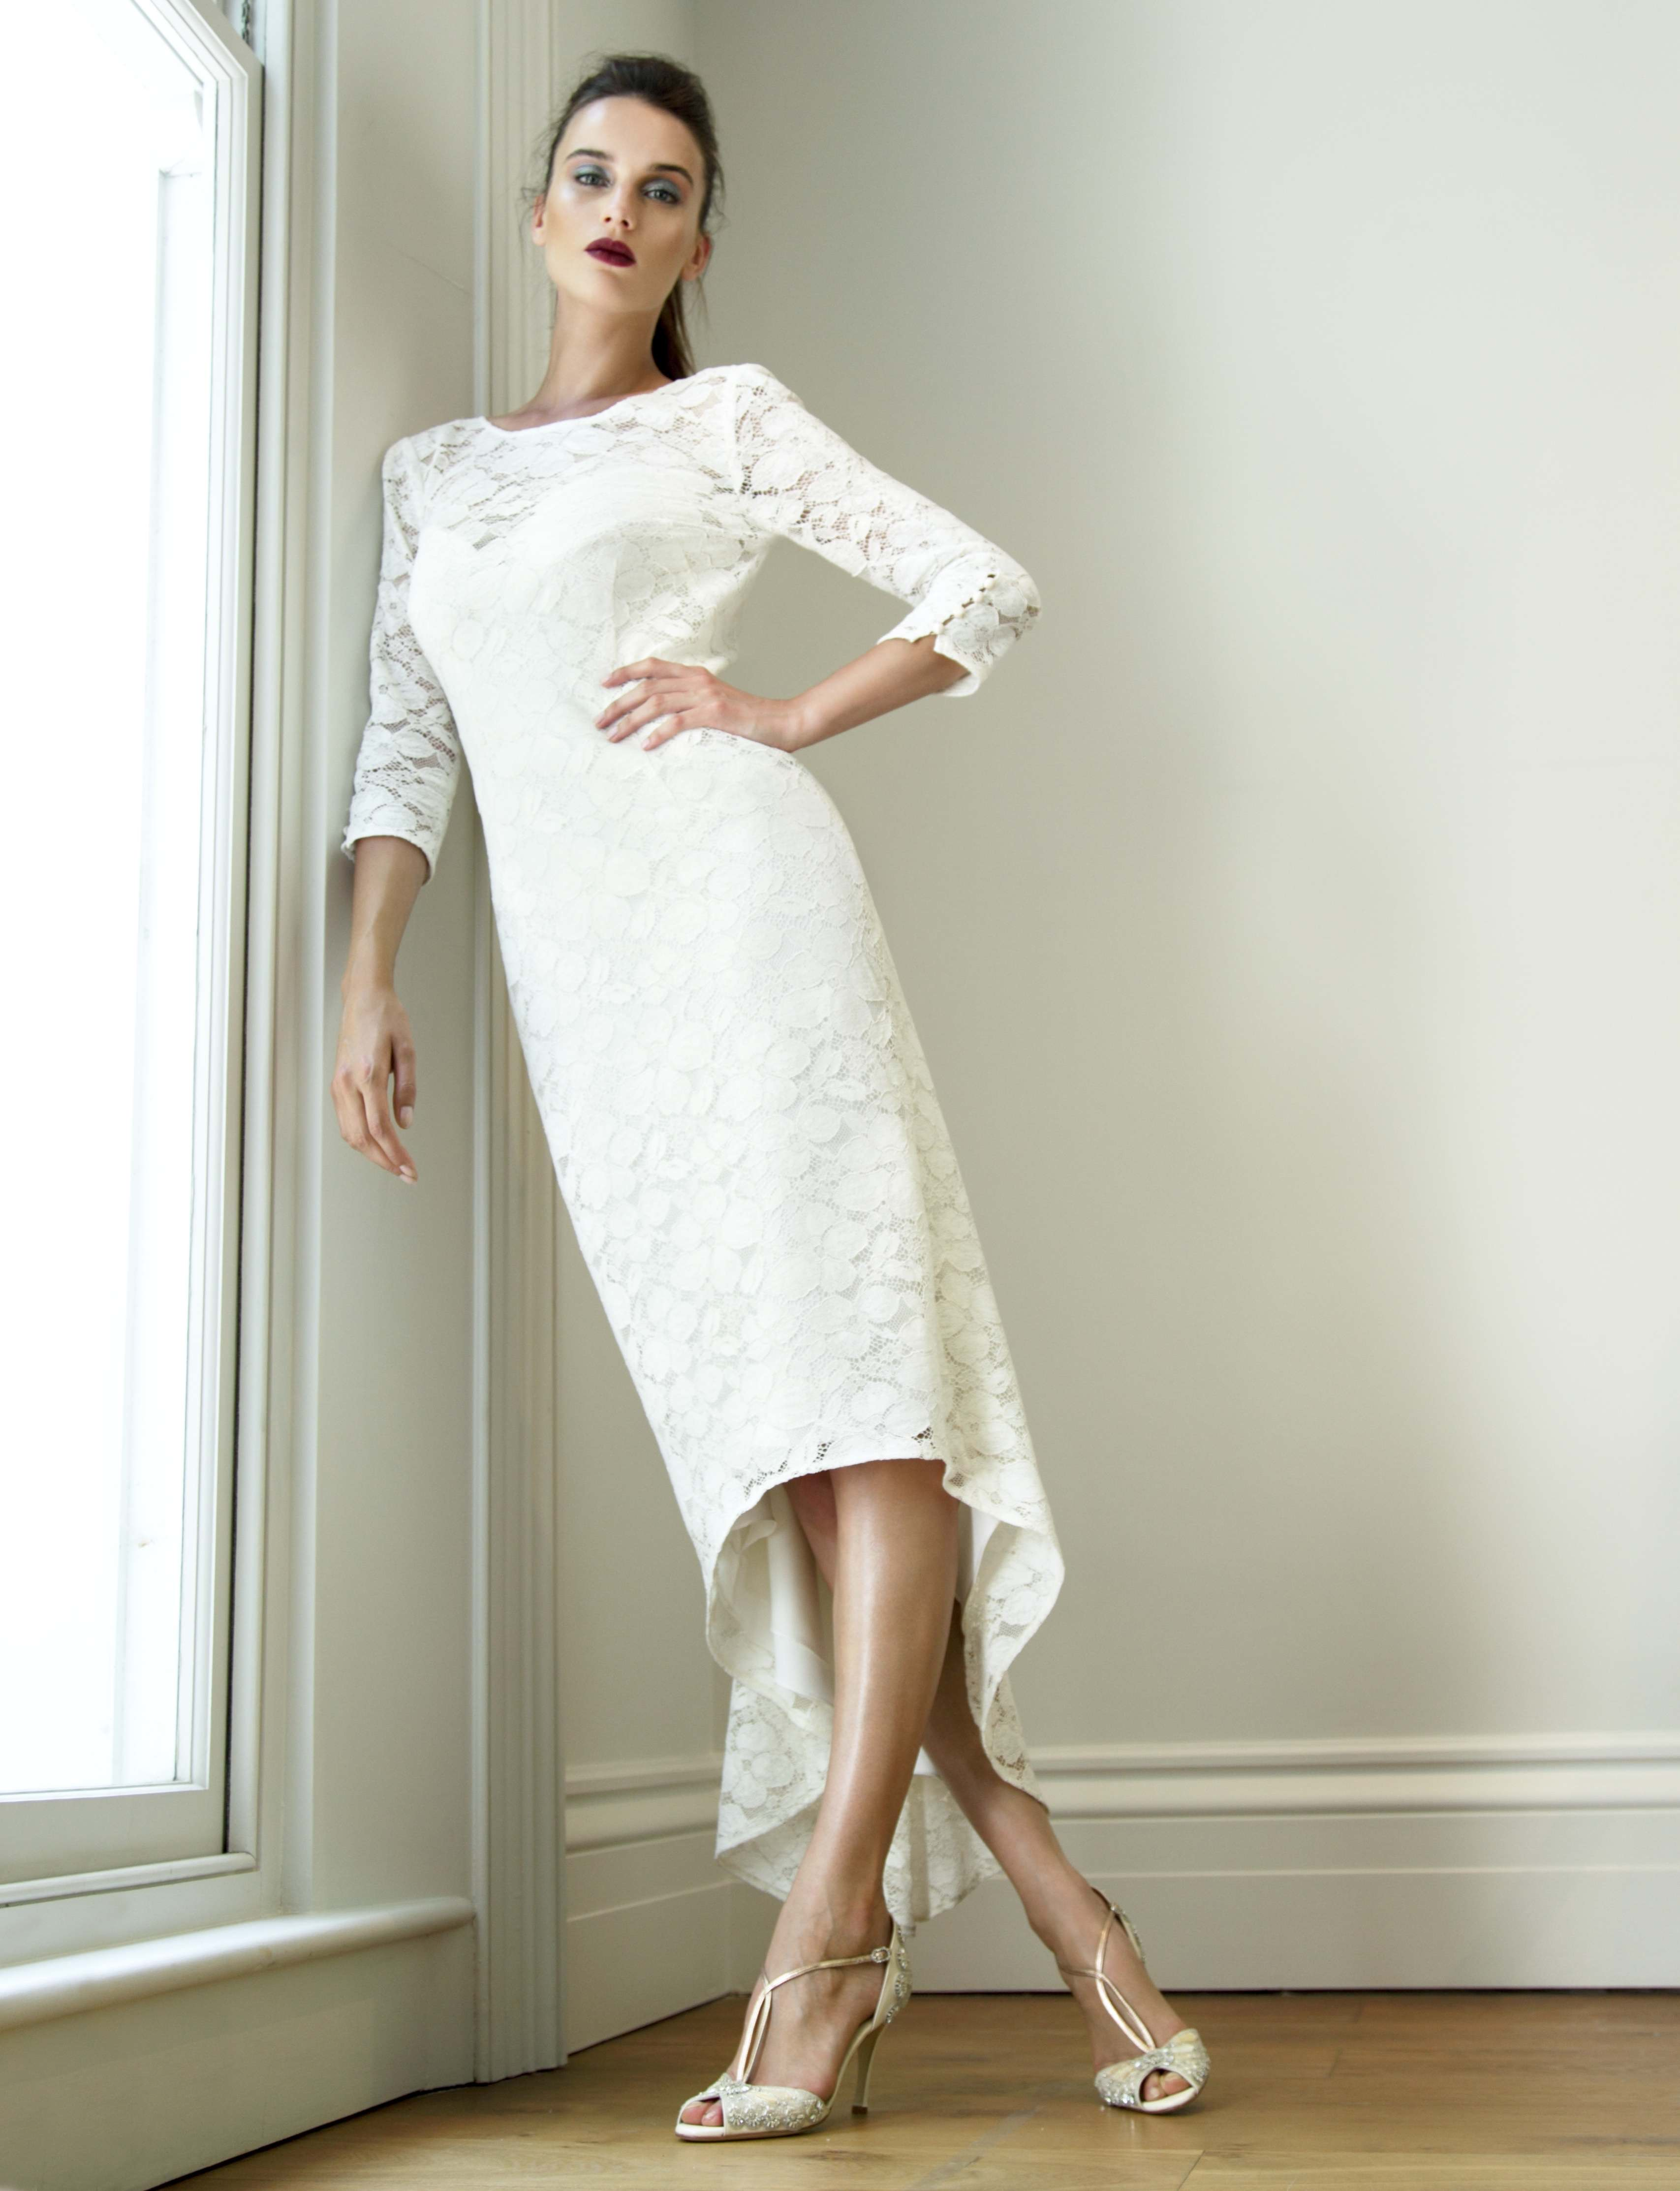 New to launch the ultimate lace wedding dress for cool for Alternative to wearing a wedding dress